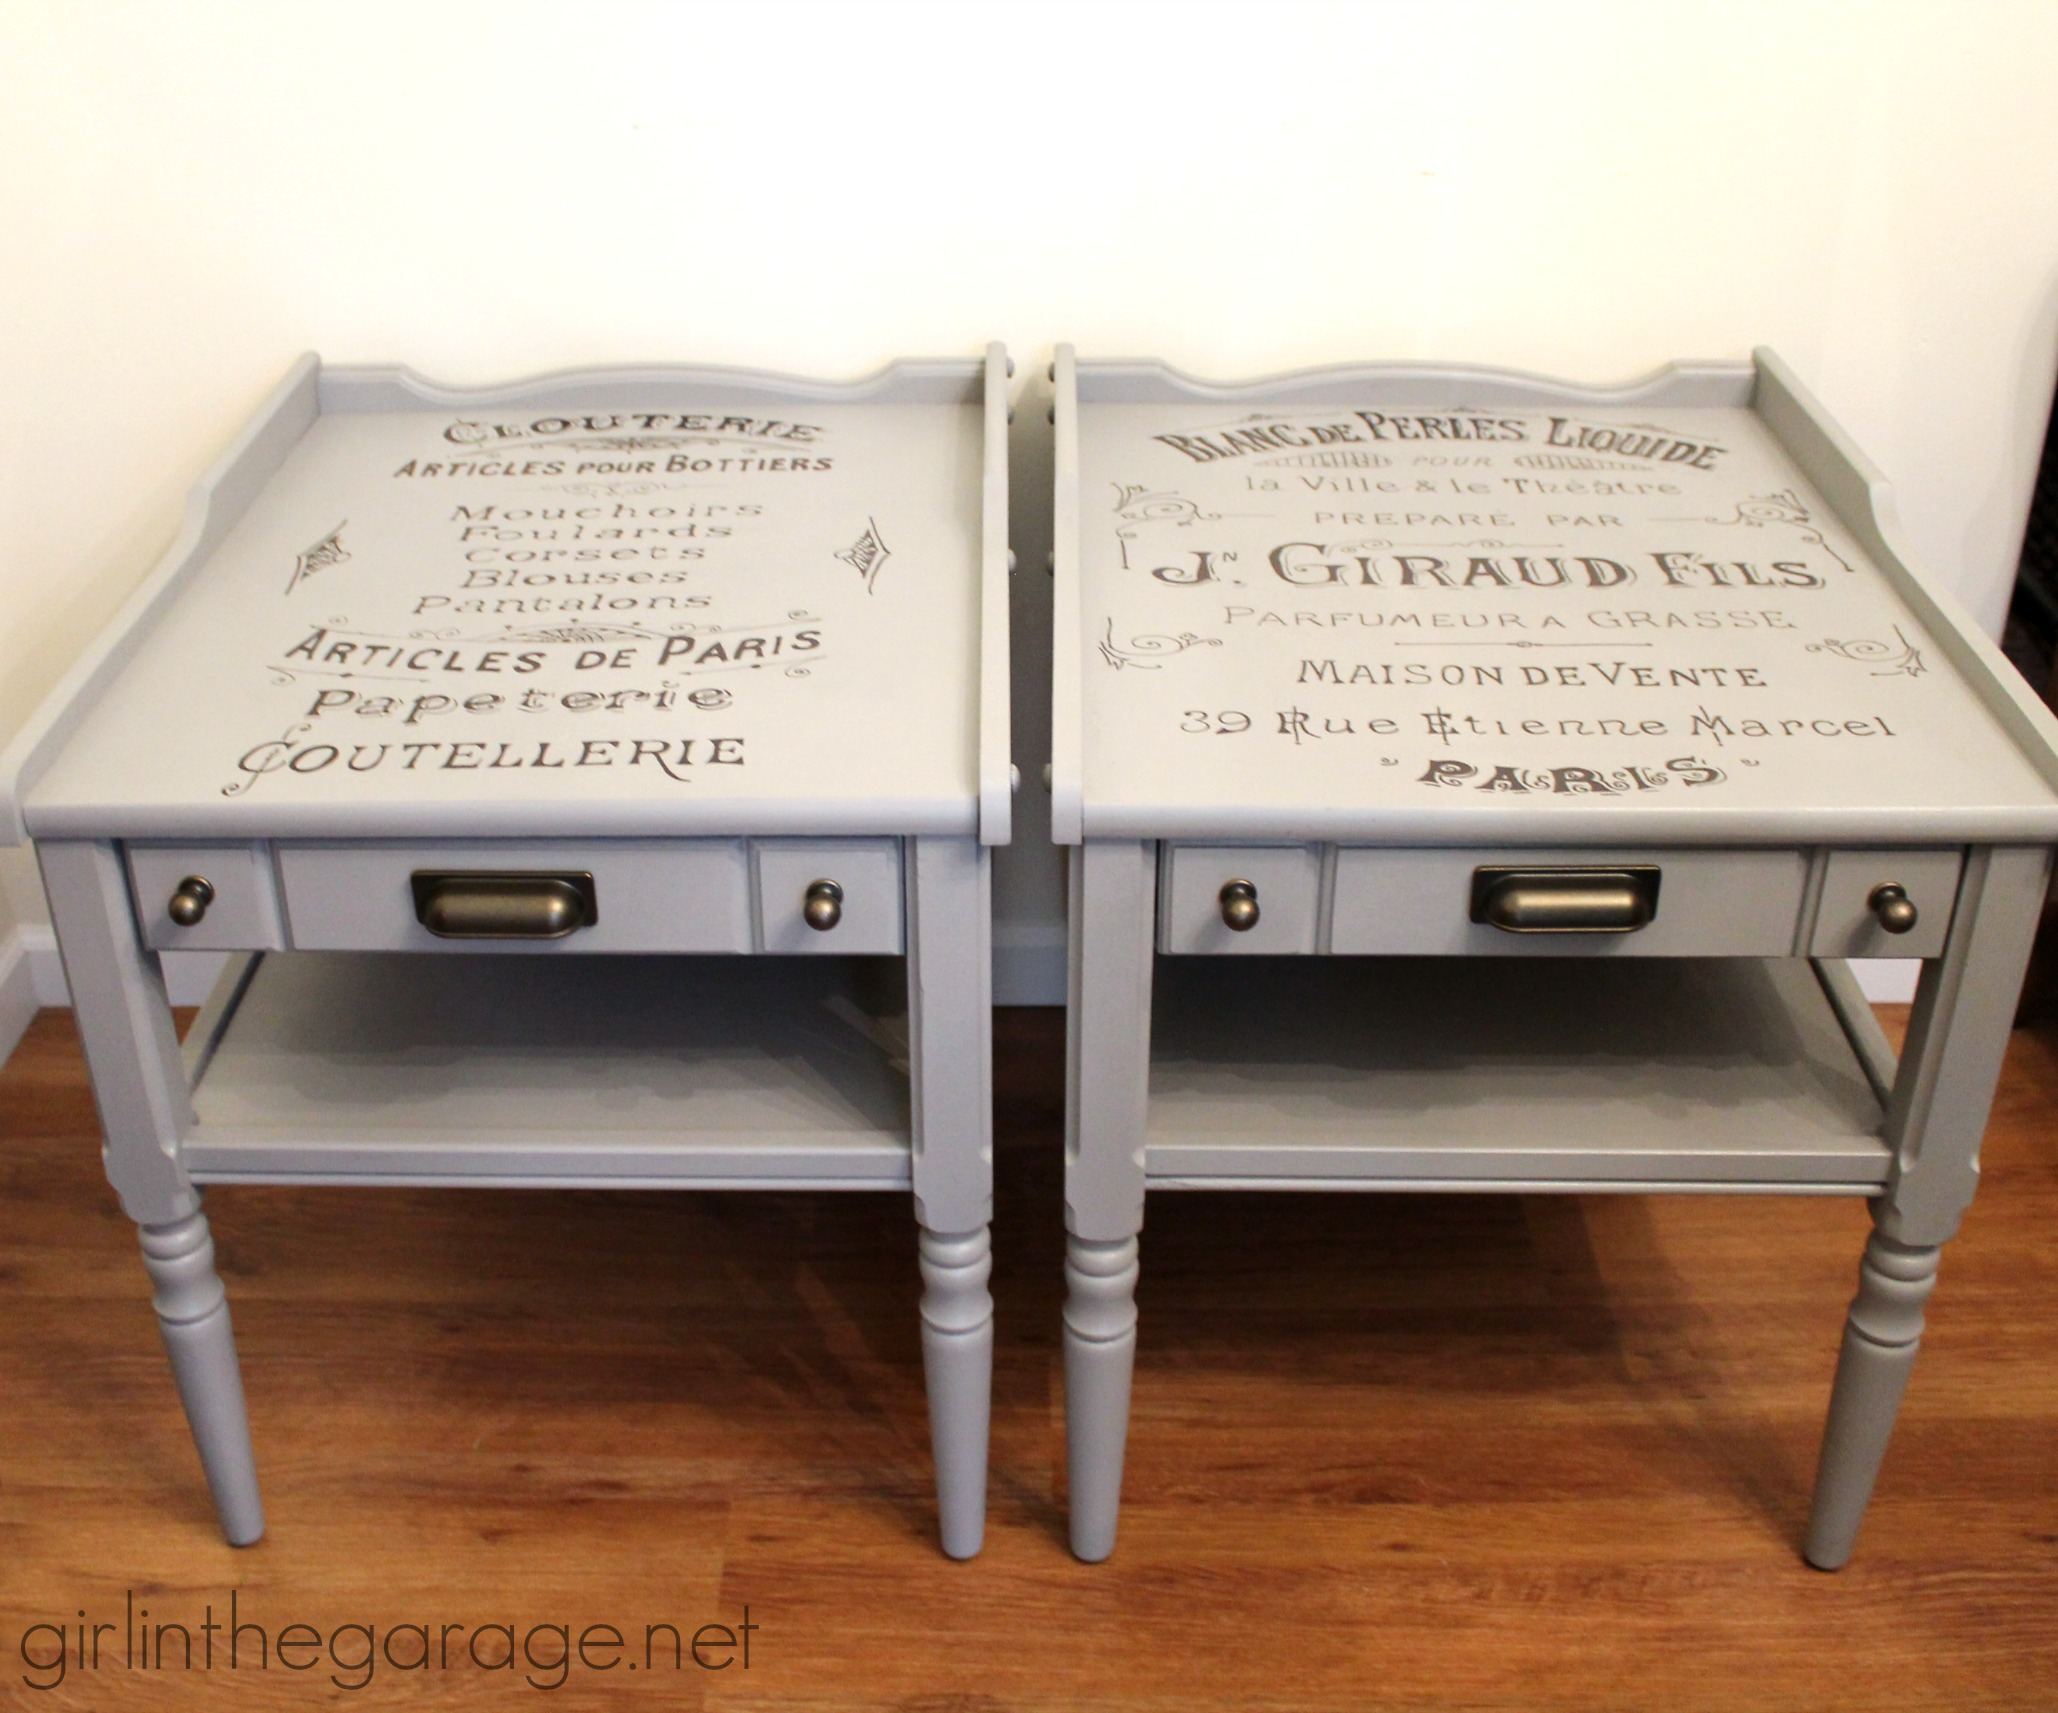 Vintage French Advertisement Tables - girlinthegarage.net